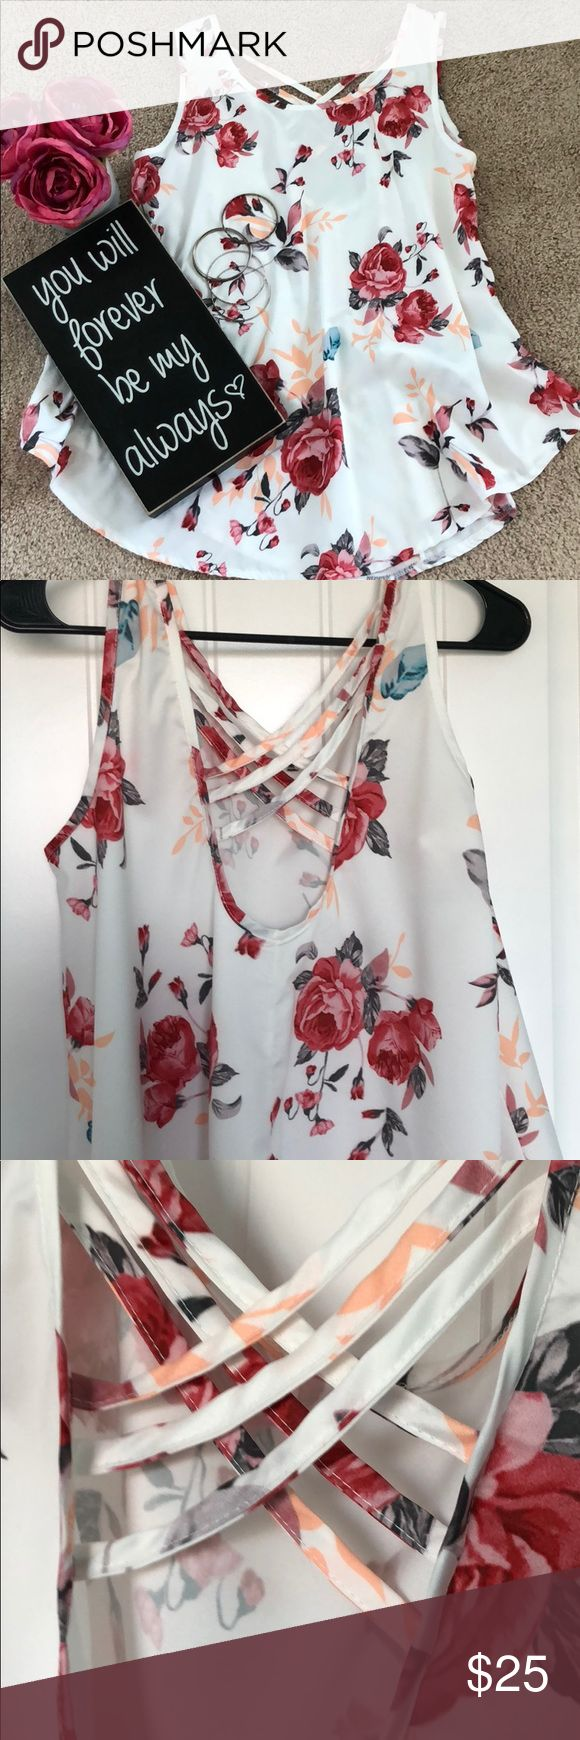 """Floral flowey tank w/crisscross straps on back Floral flowey tank w/crisscross straps on back. Brand new. Never worn. Never washed.  There is no tag on this item. (I know odd),  bust measurement is 20"""". Armpit to hem 20"""".  Based on measurements and cut of shirt I'm gonna day size Large. This s top does curve up on the side hem to 15"""". Look at last pic.  Love the on trend floral design! Browse my jewelry and find something to wear with this! Tops Blouses"""